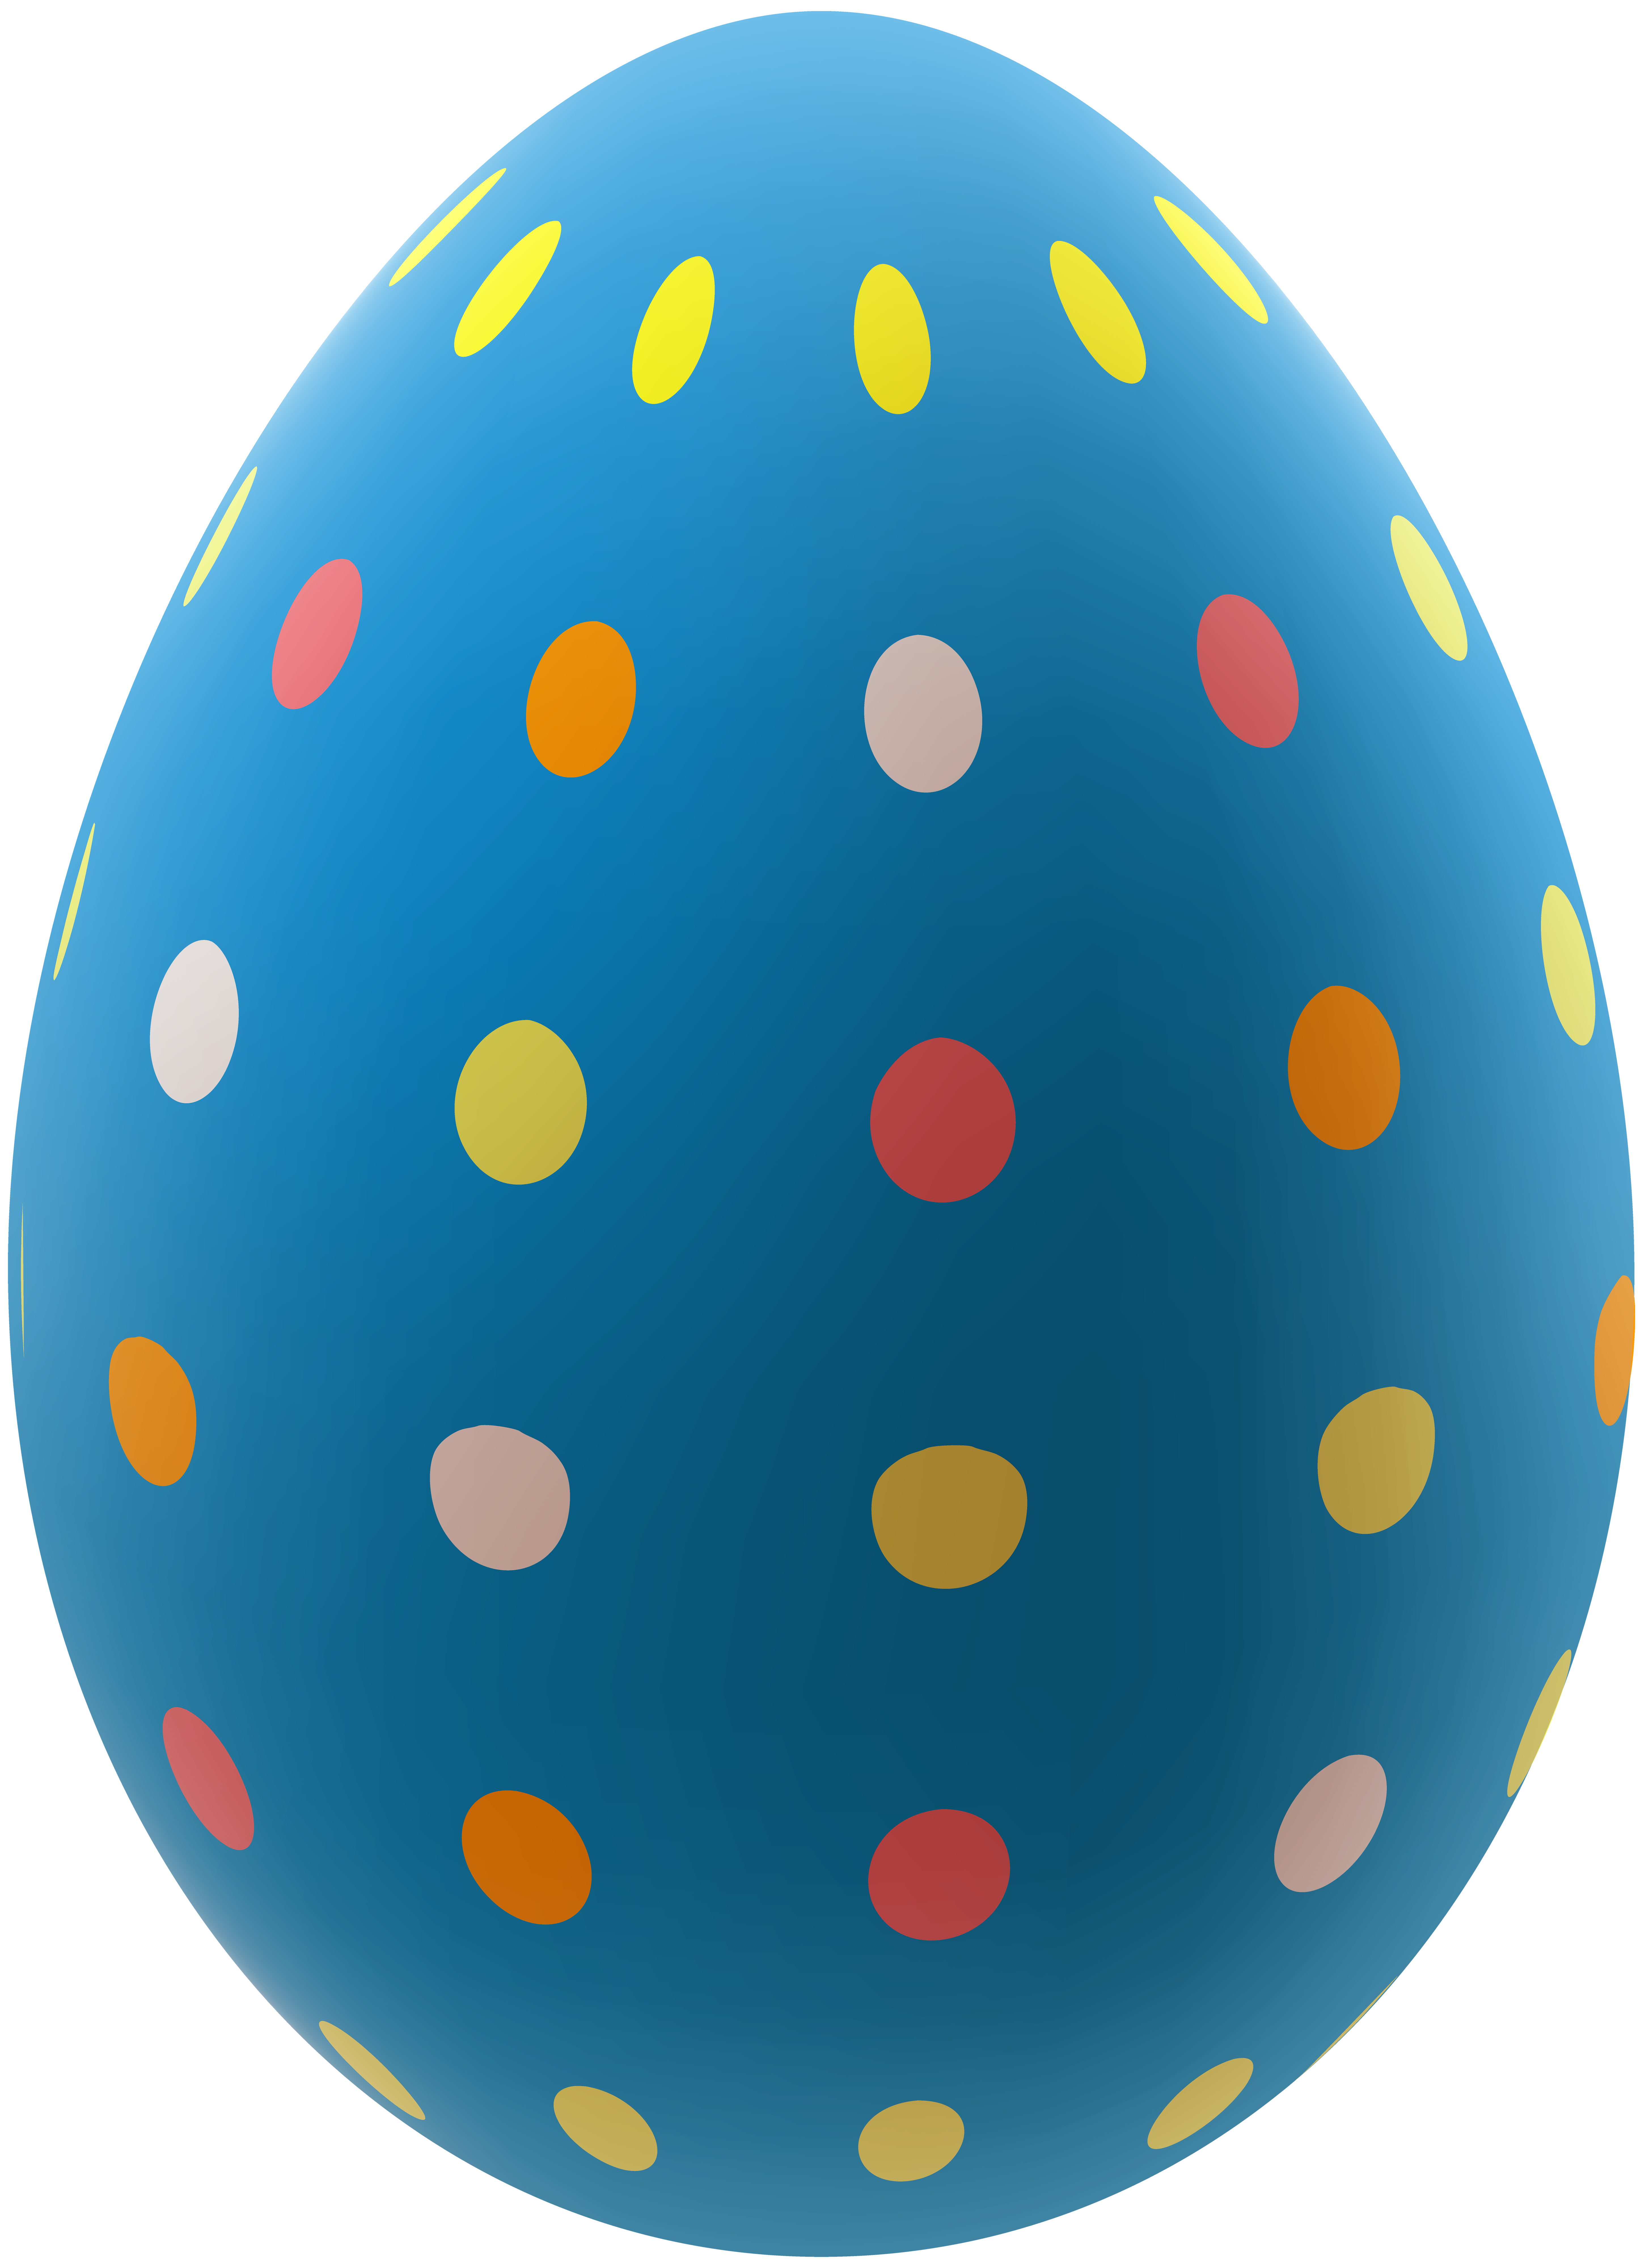 Easter Eggs Png Clipart | Free download on ClipArtMag